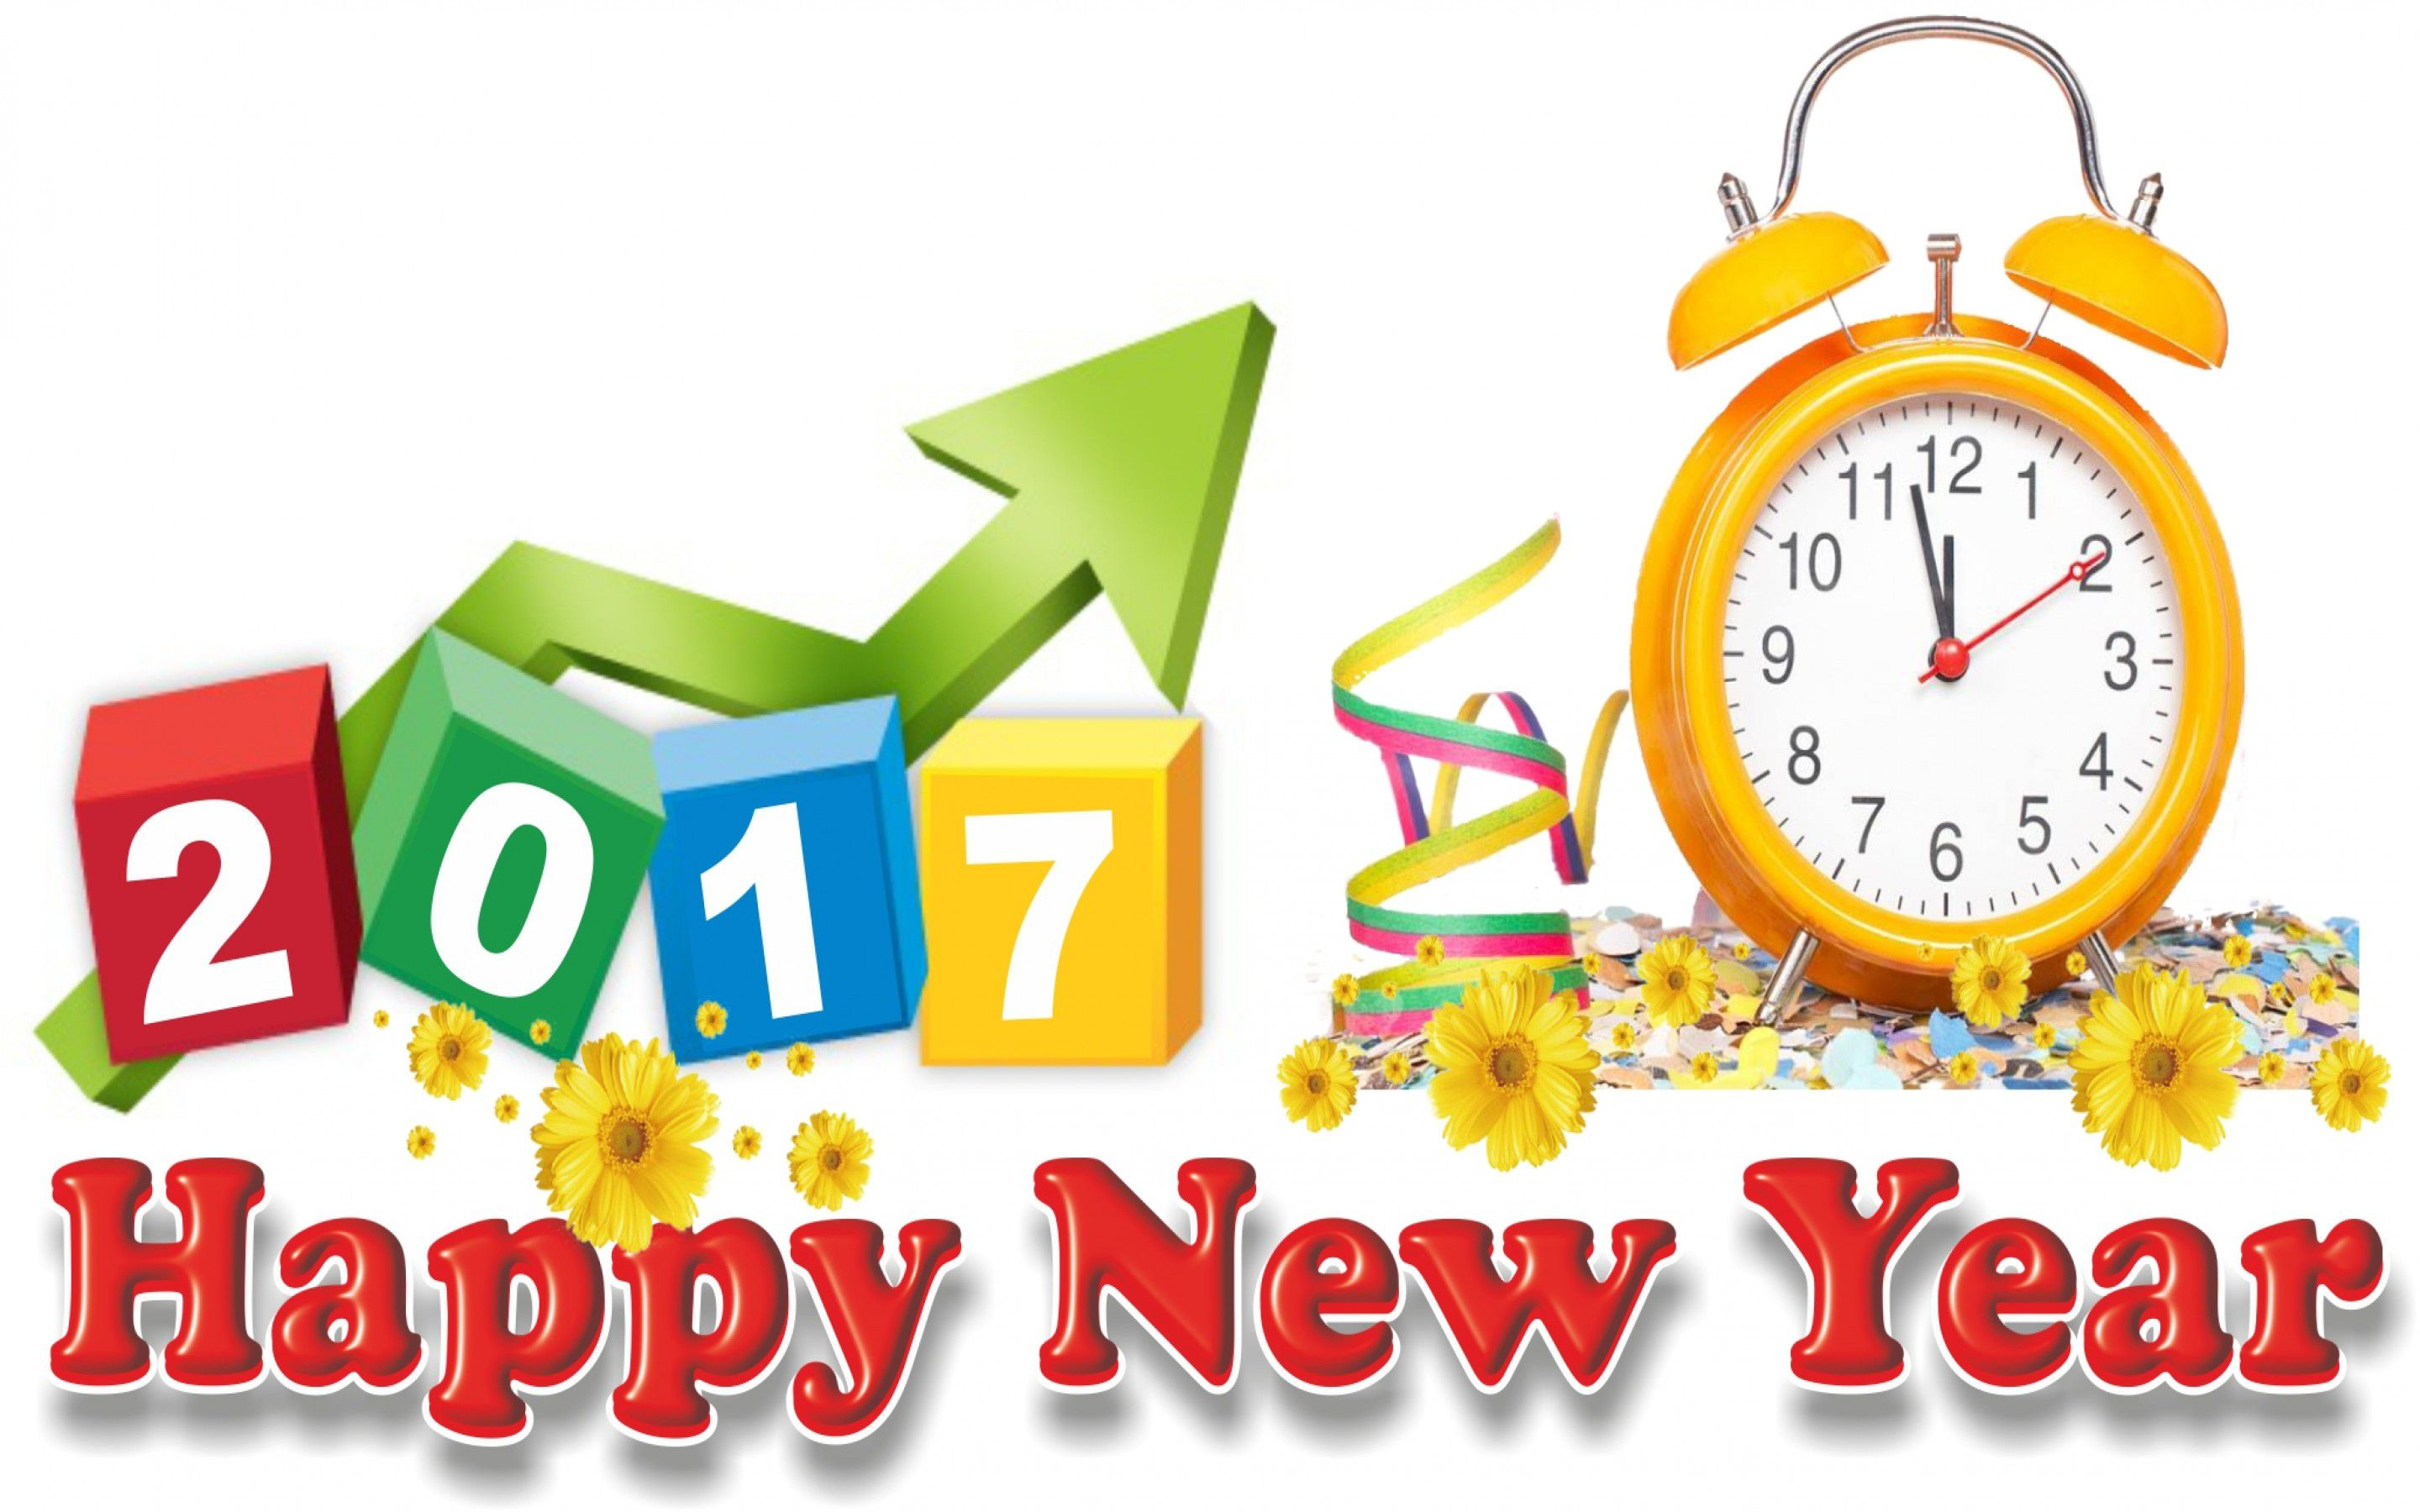 Hd Wallpaper For Happy New Year 2017 Bear Glass Blog